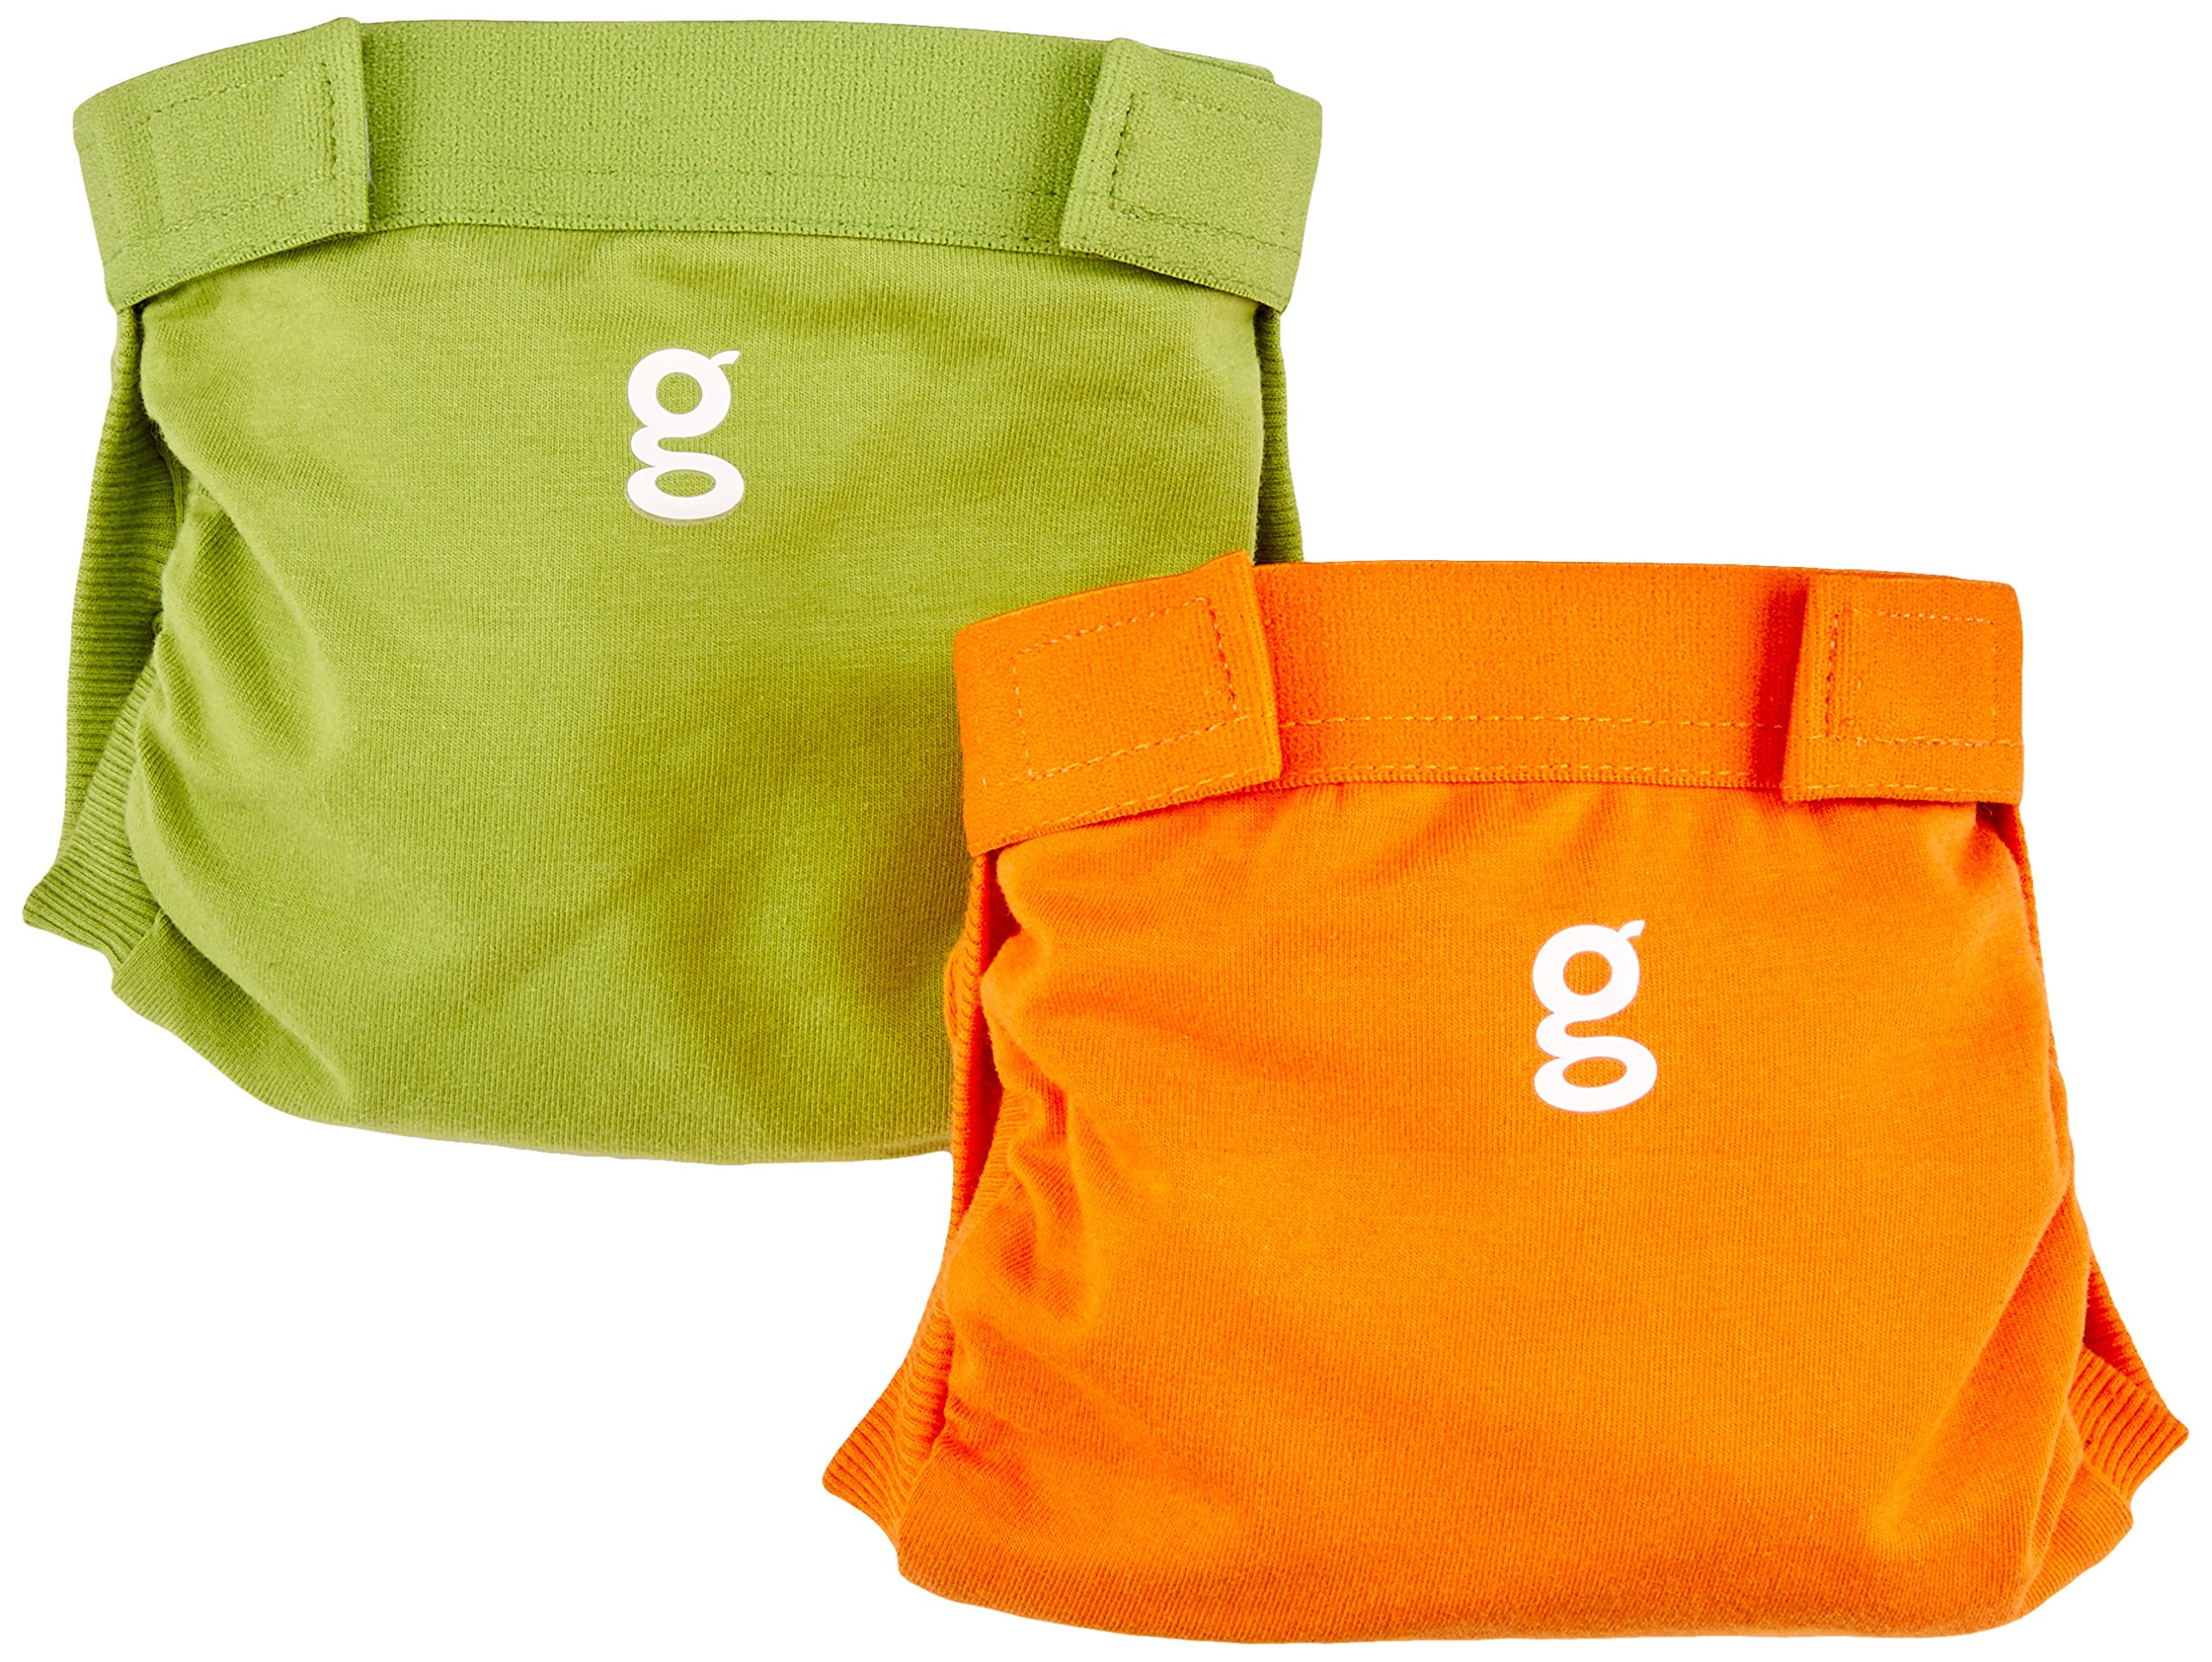 gDiapers gPants, Everyday g's, Small (6 Count)